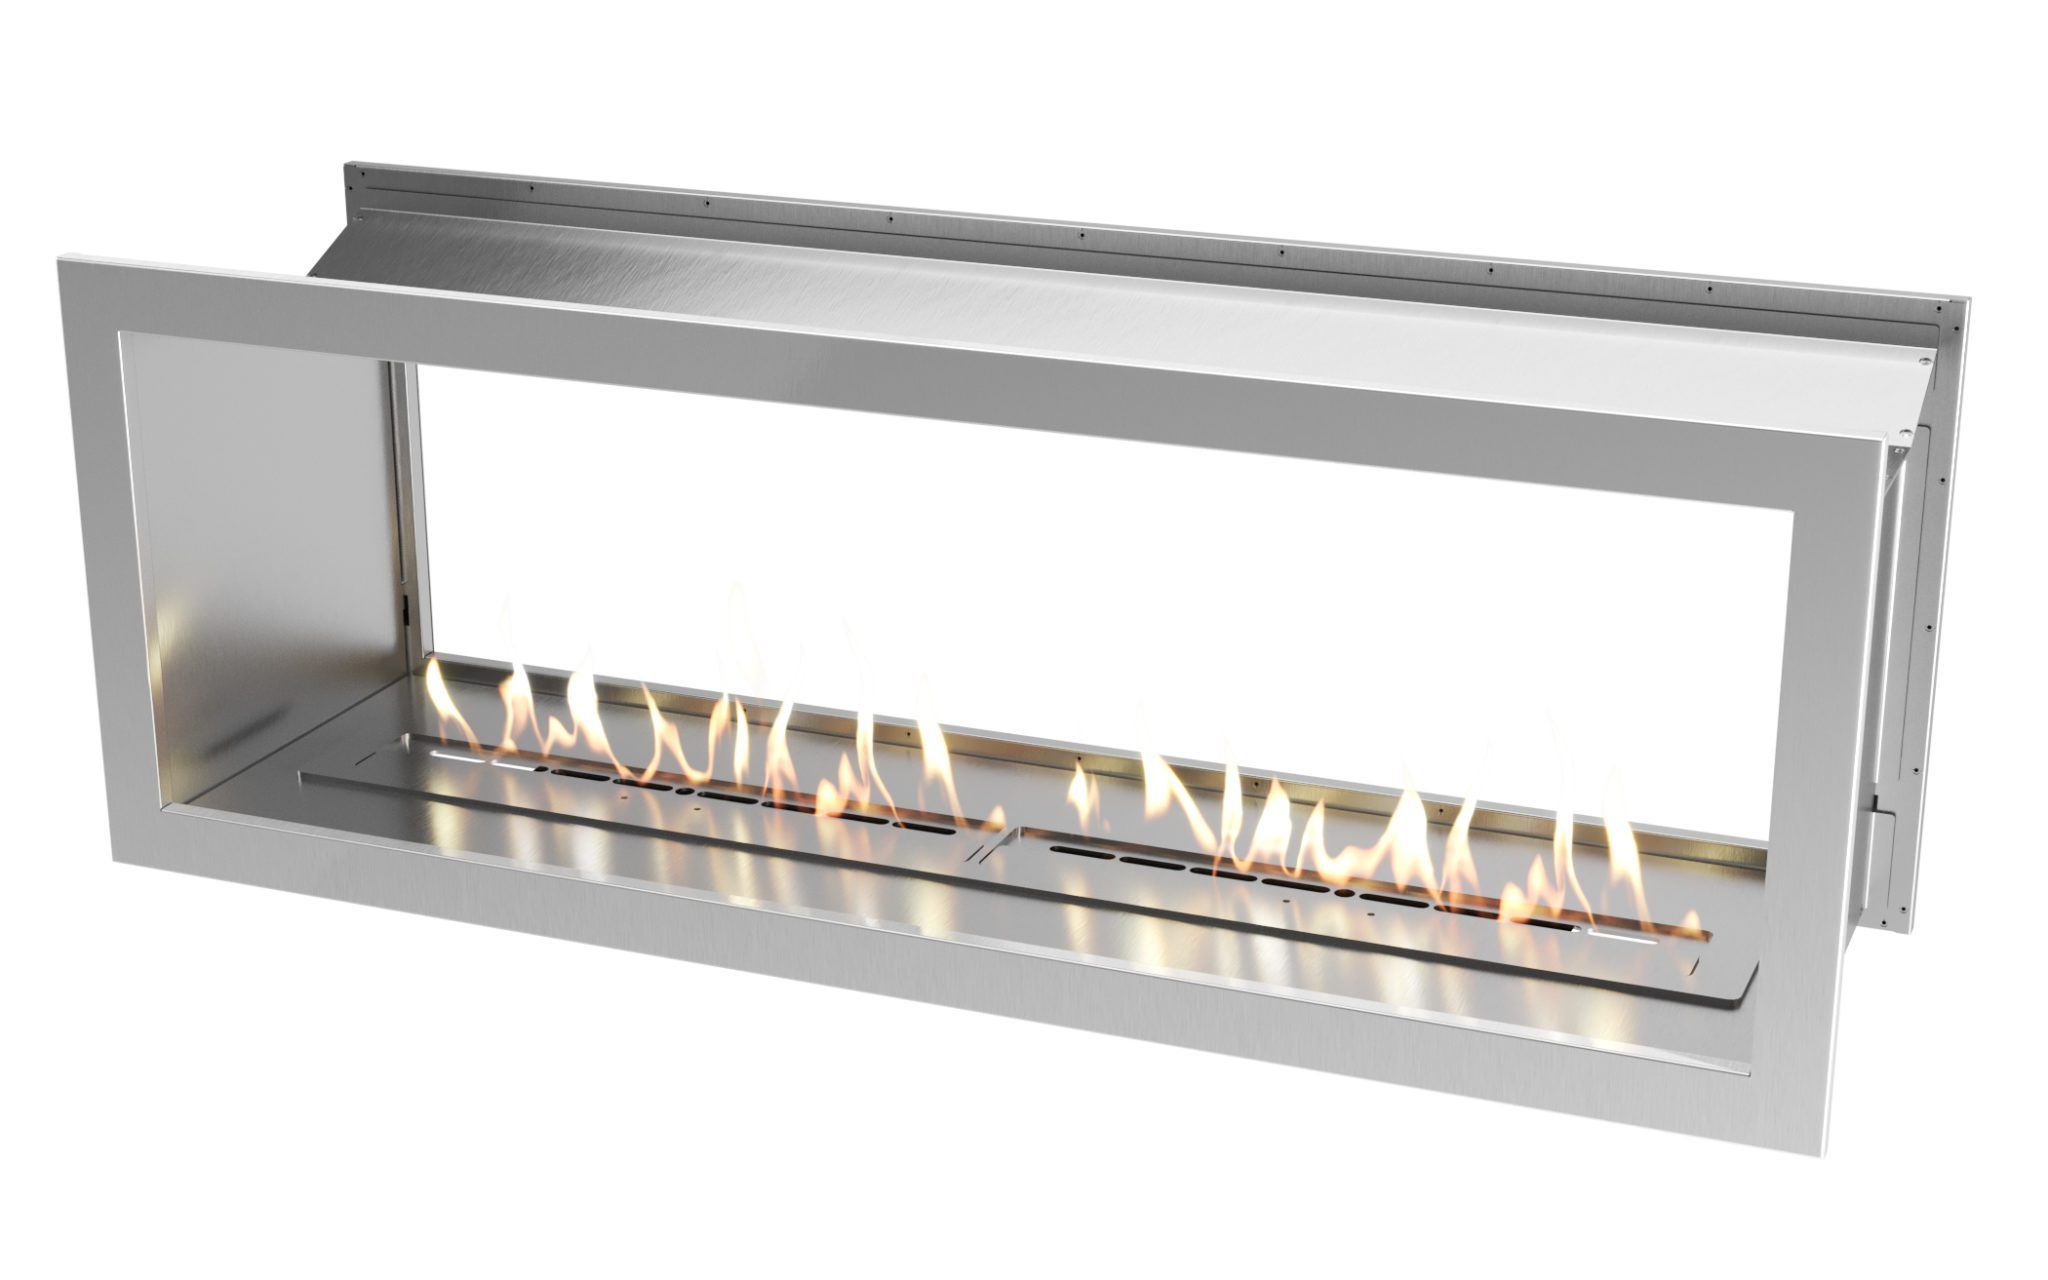 1650 Stainless steel double sided firebox with 1400 slimline biofuel burner